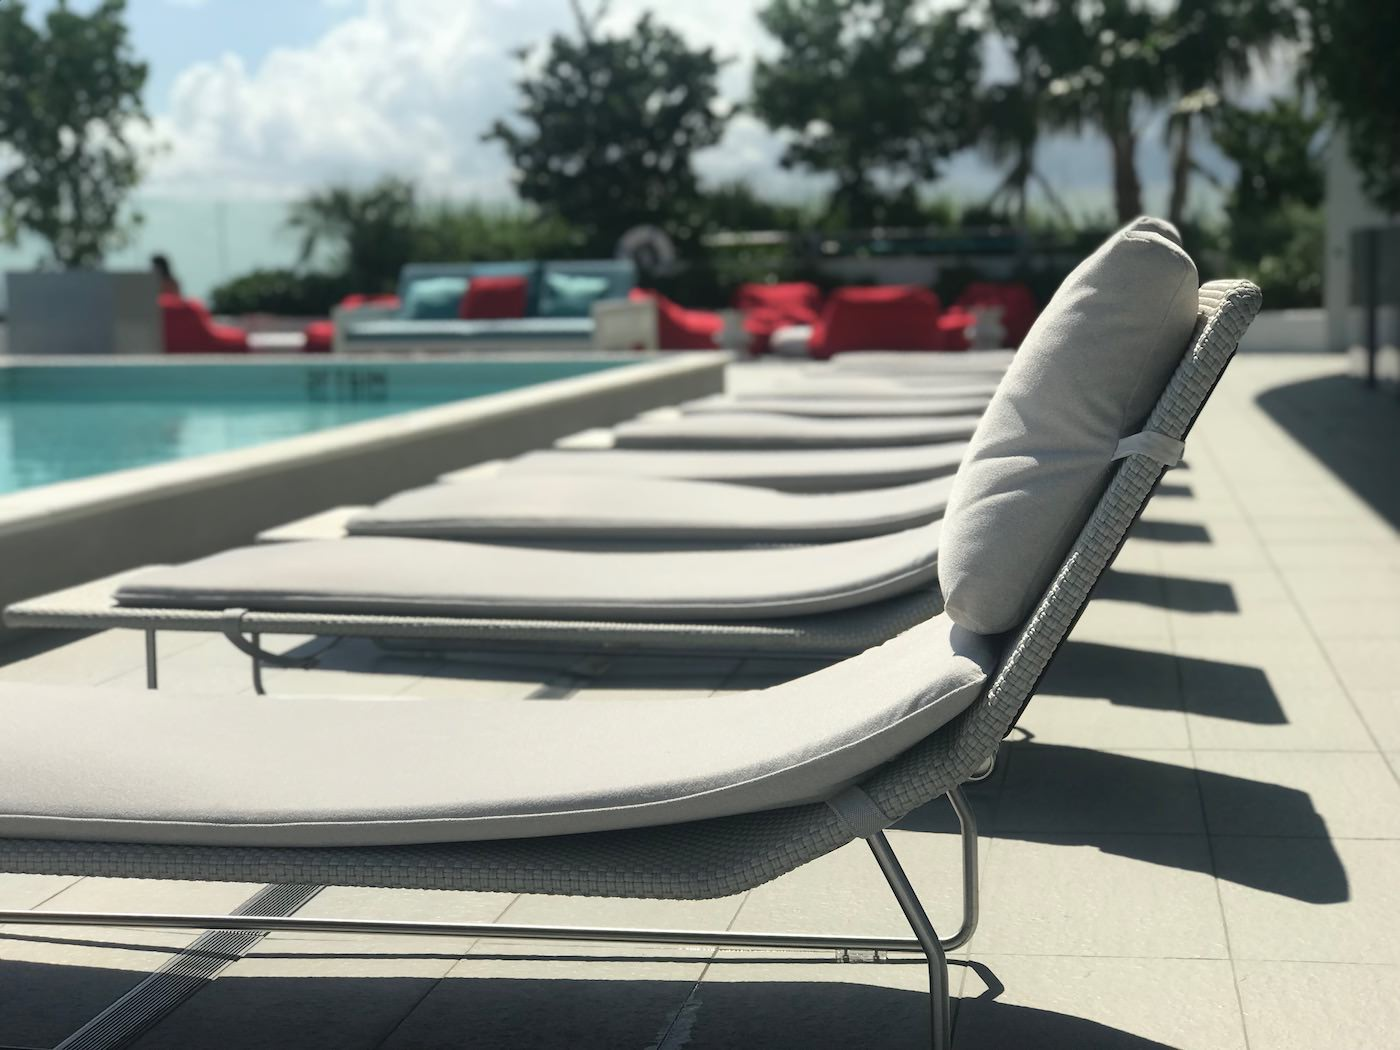 Lounge chairs by rooftop pool